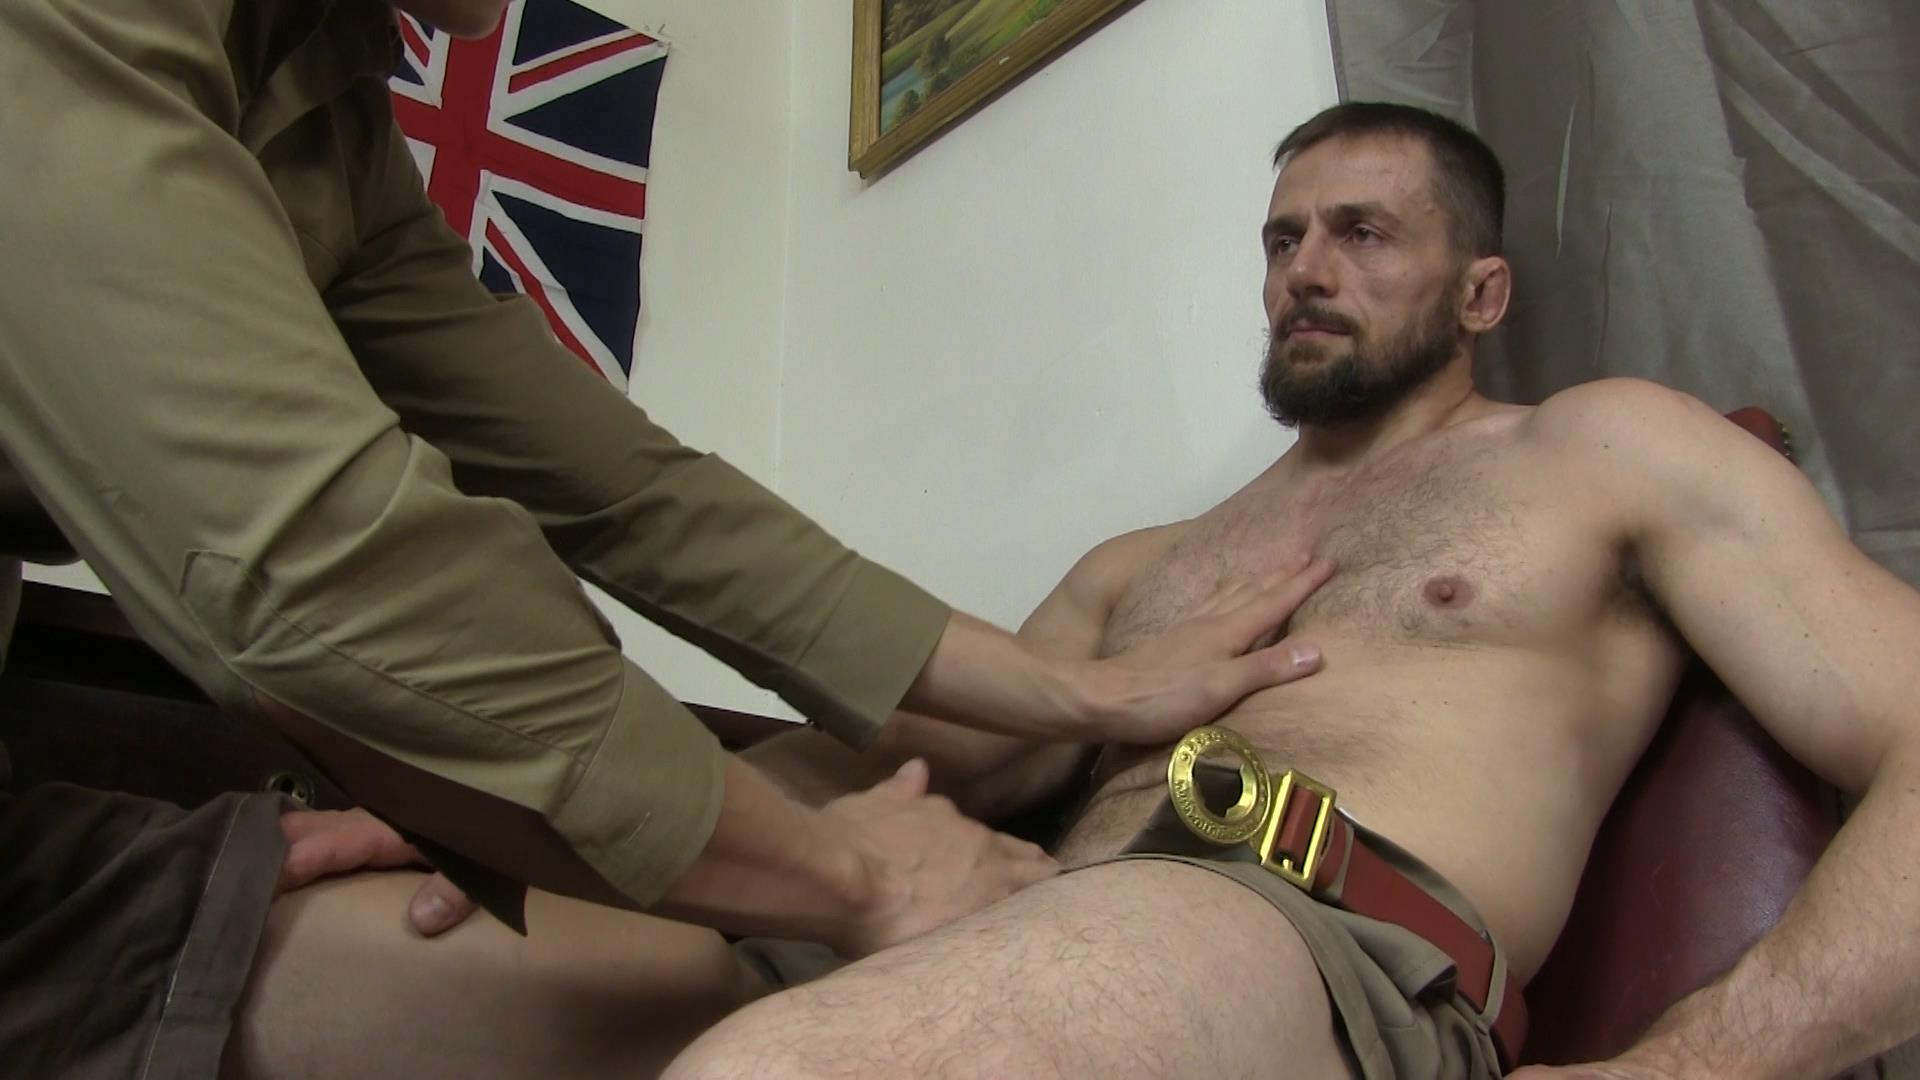 Bareback-Me-Daddy-Eric-Lenn-and-Ryan-Torres-Twink-Fucked-By-Older-man-Amateur-Gay-Porn-06 Twink Gets Bareback Fucked By An Older Scoutmaster